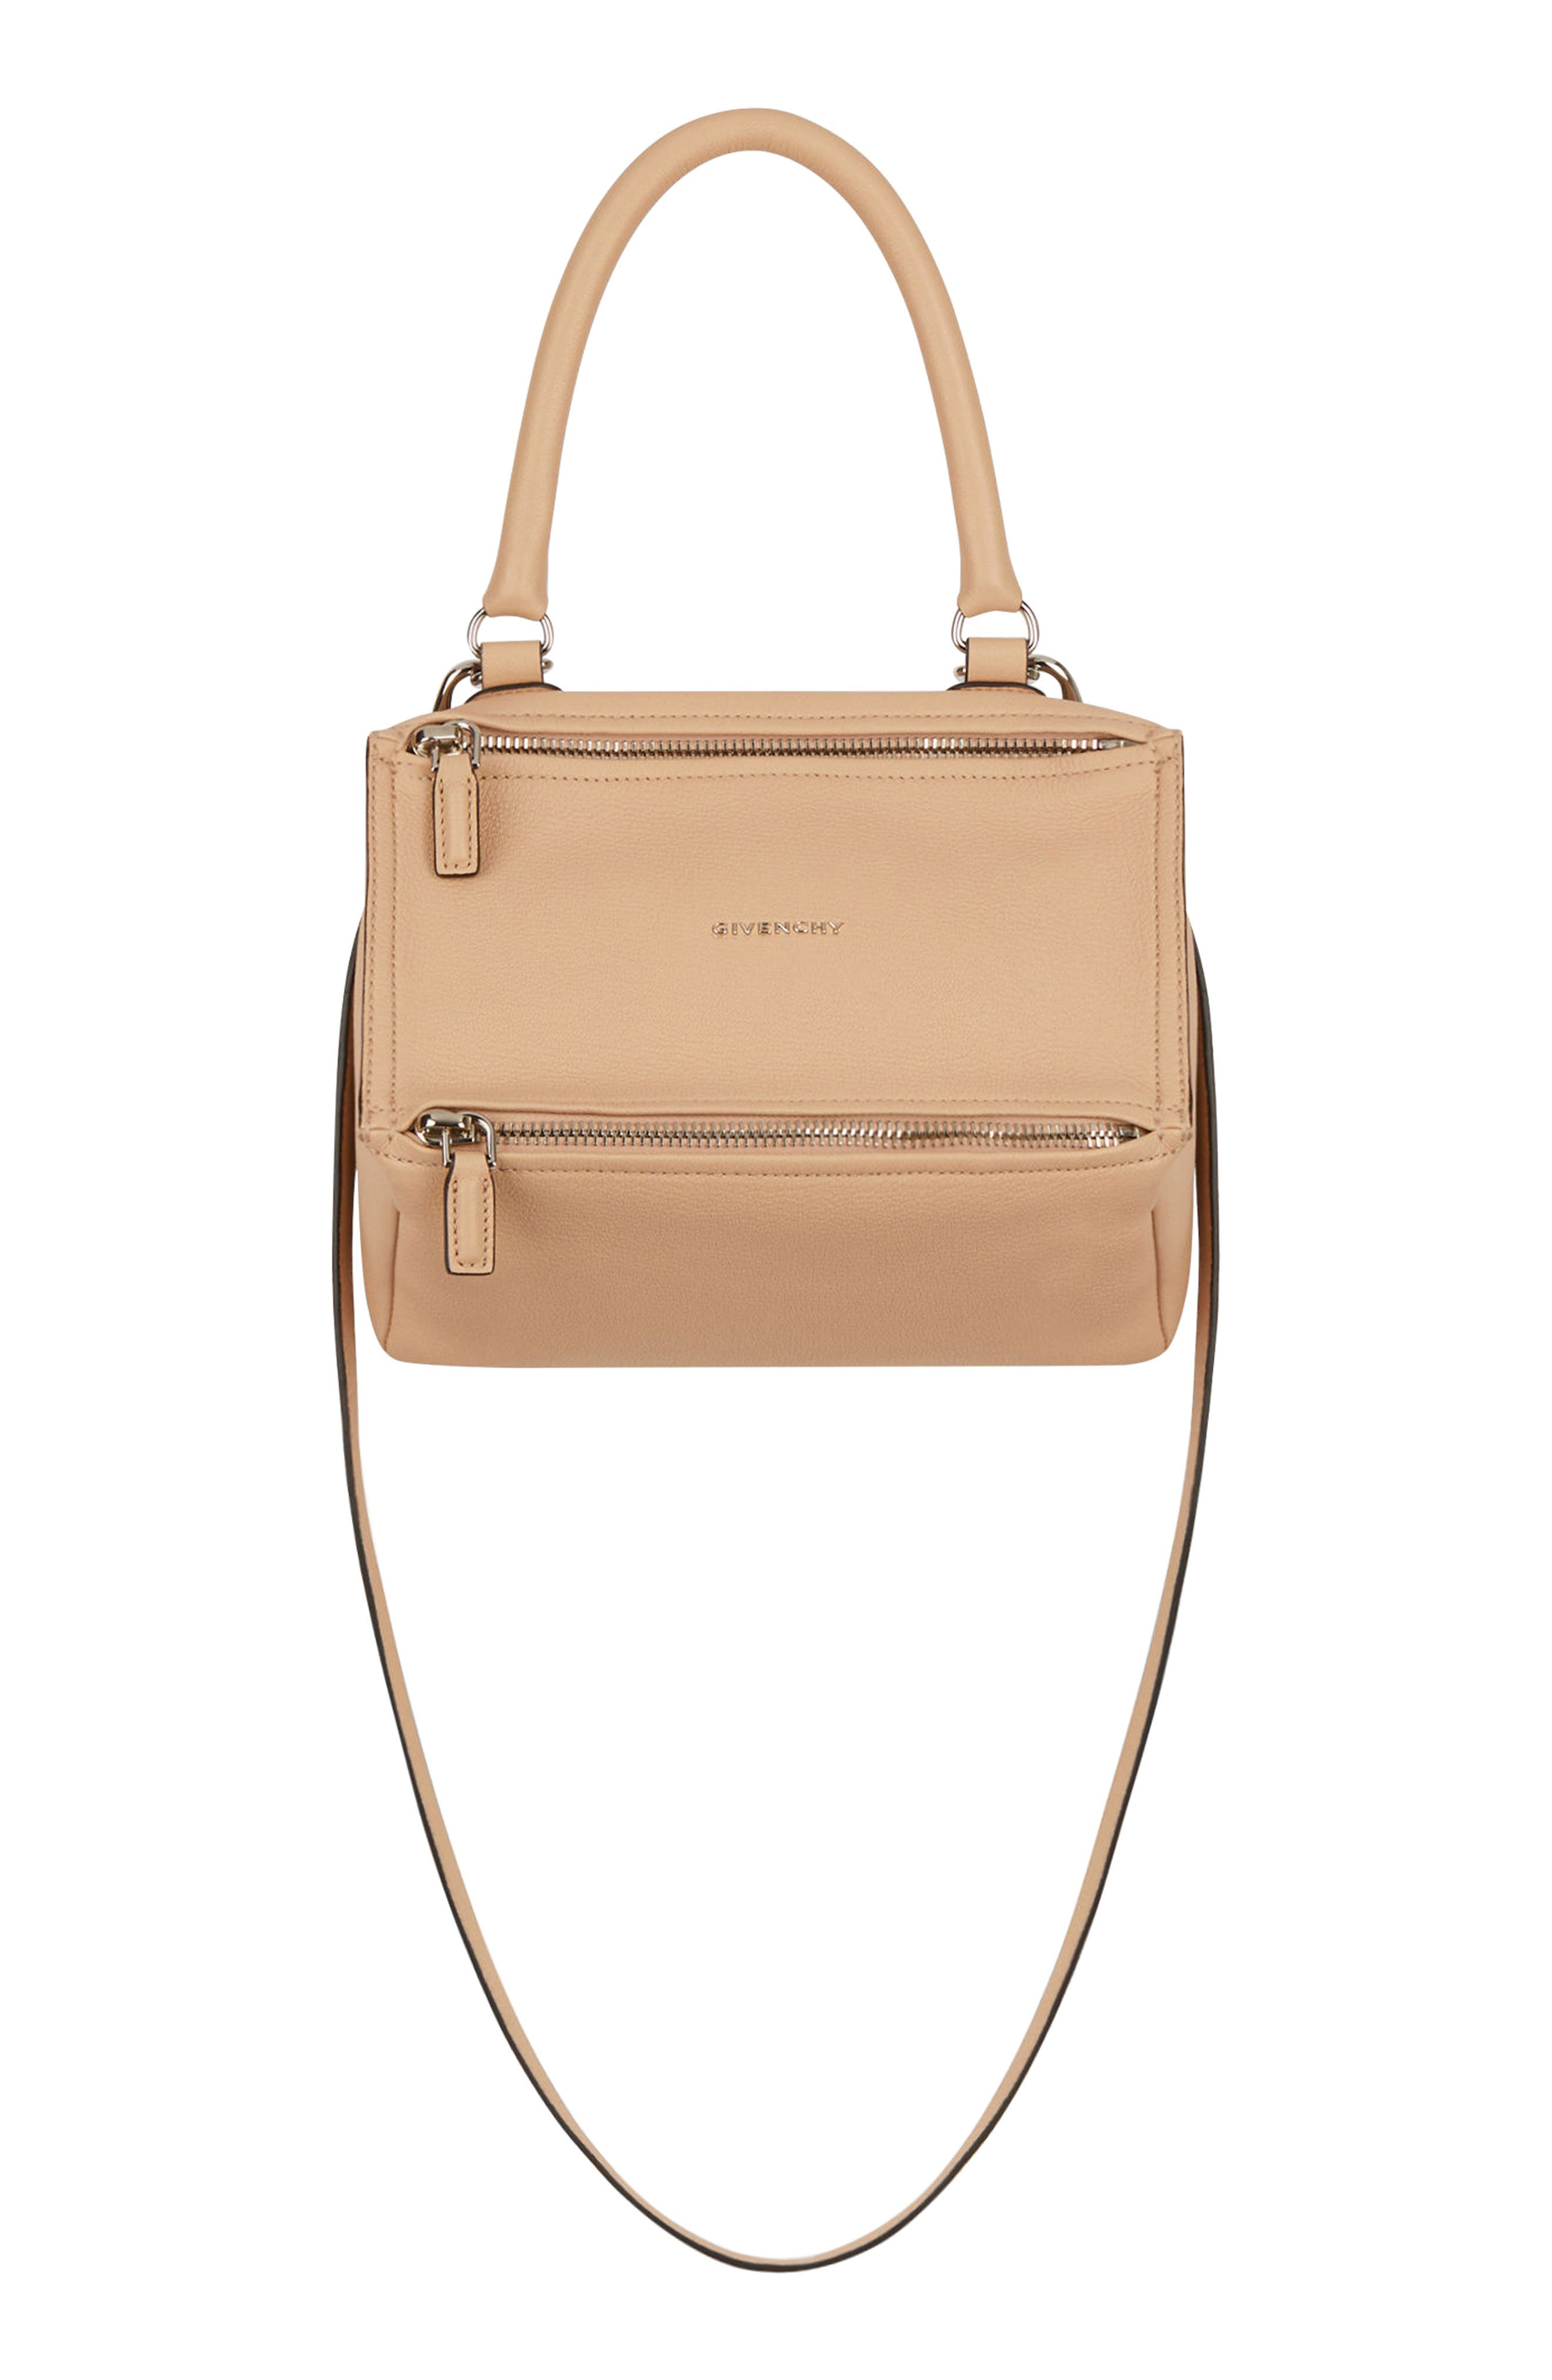 'SMALL PANDORA' LEATHER SATCHEL - BEIGE